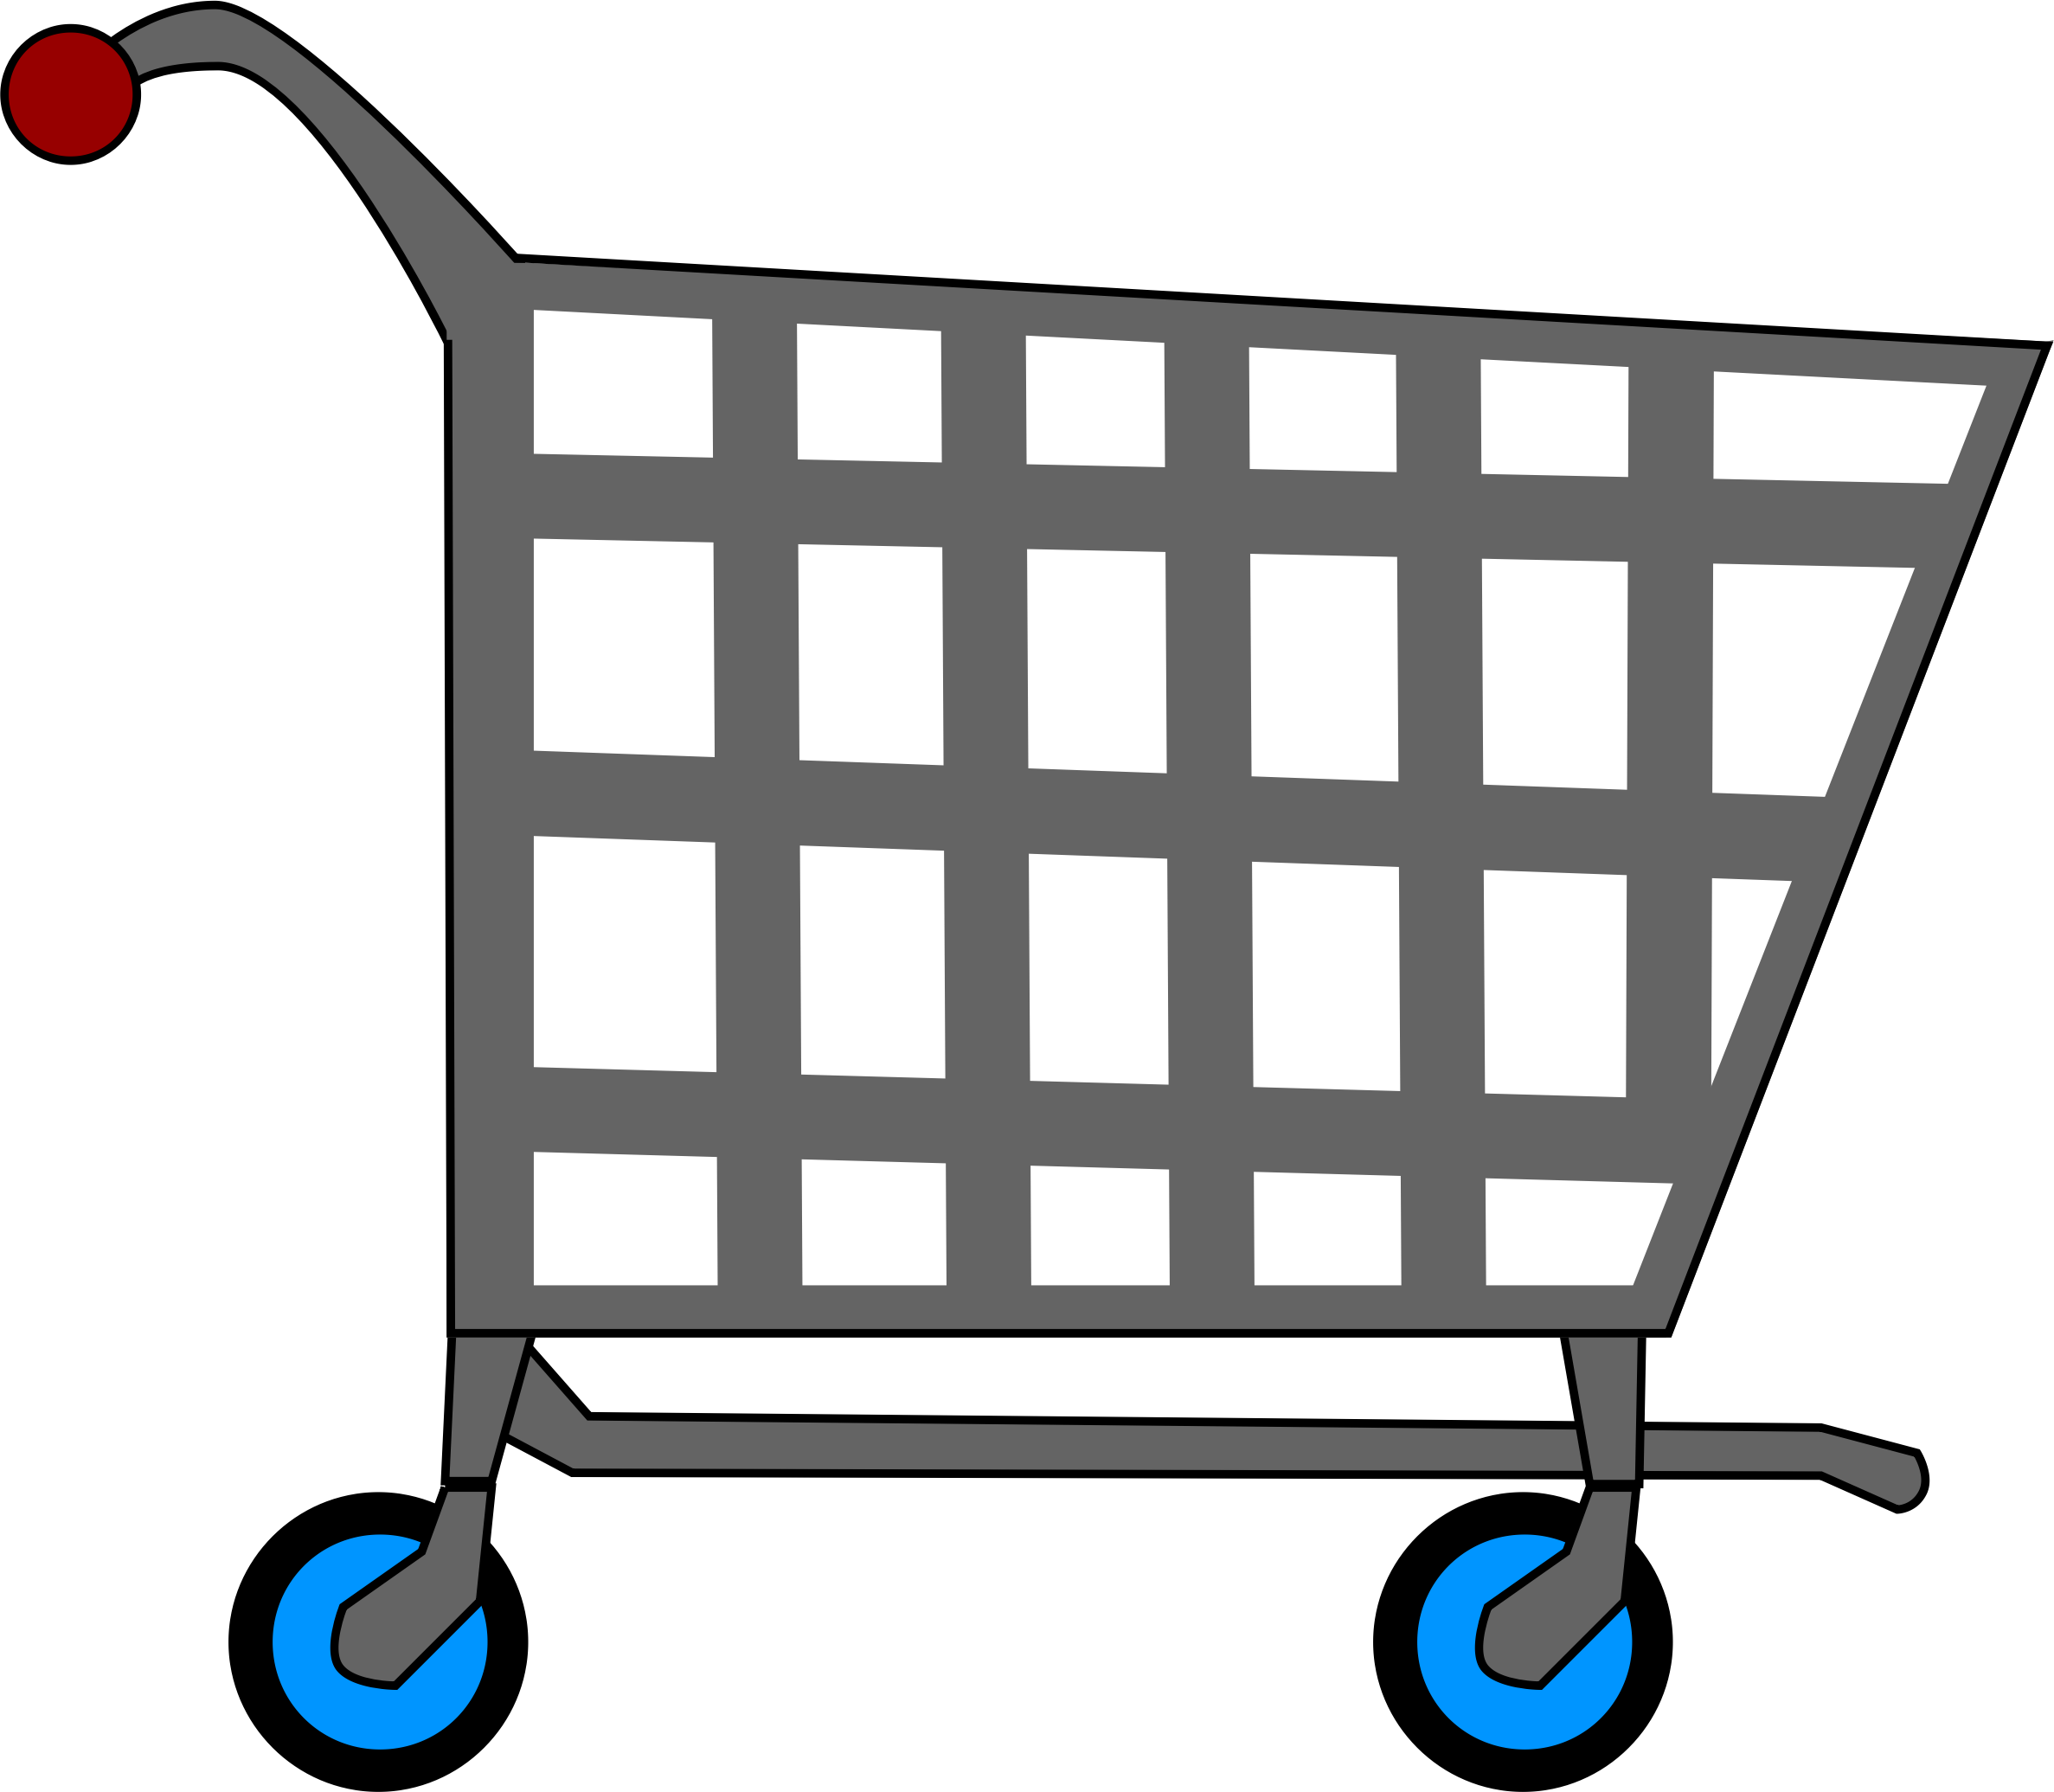 Book cart clipart vector royalty free Shopping cart PNG images free download vector royalty free